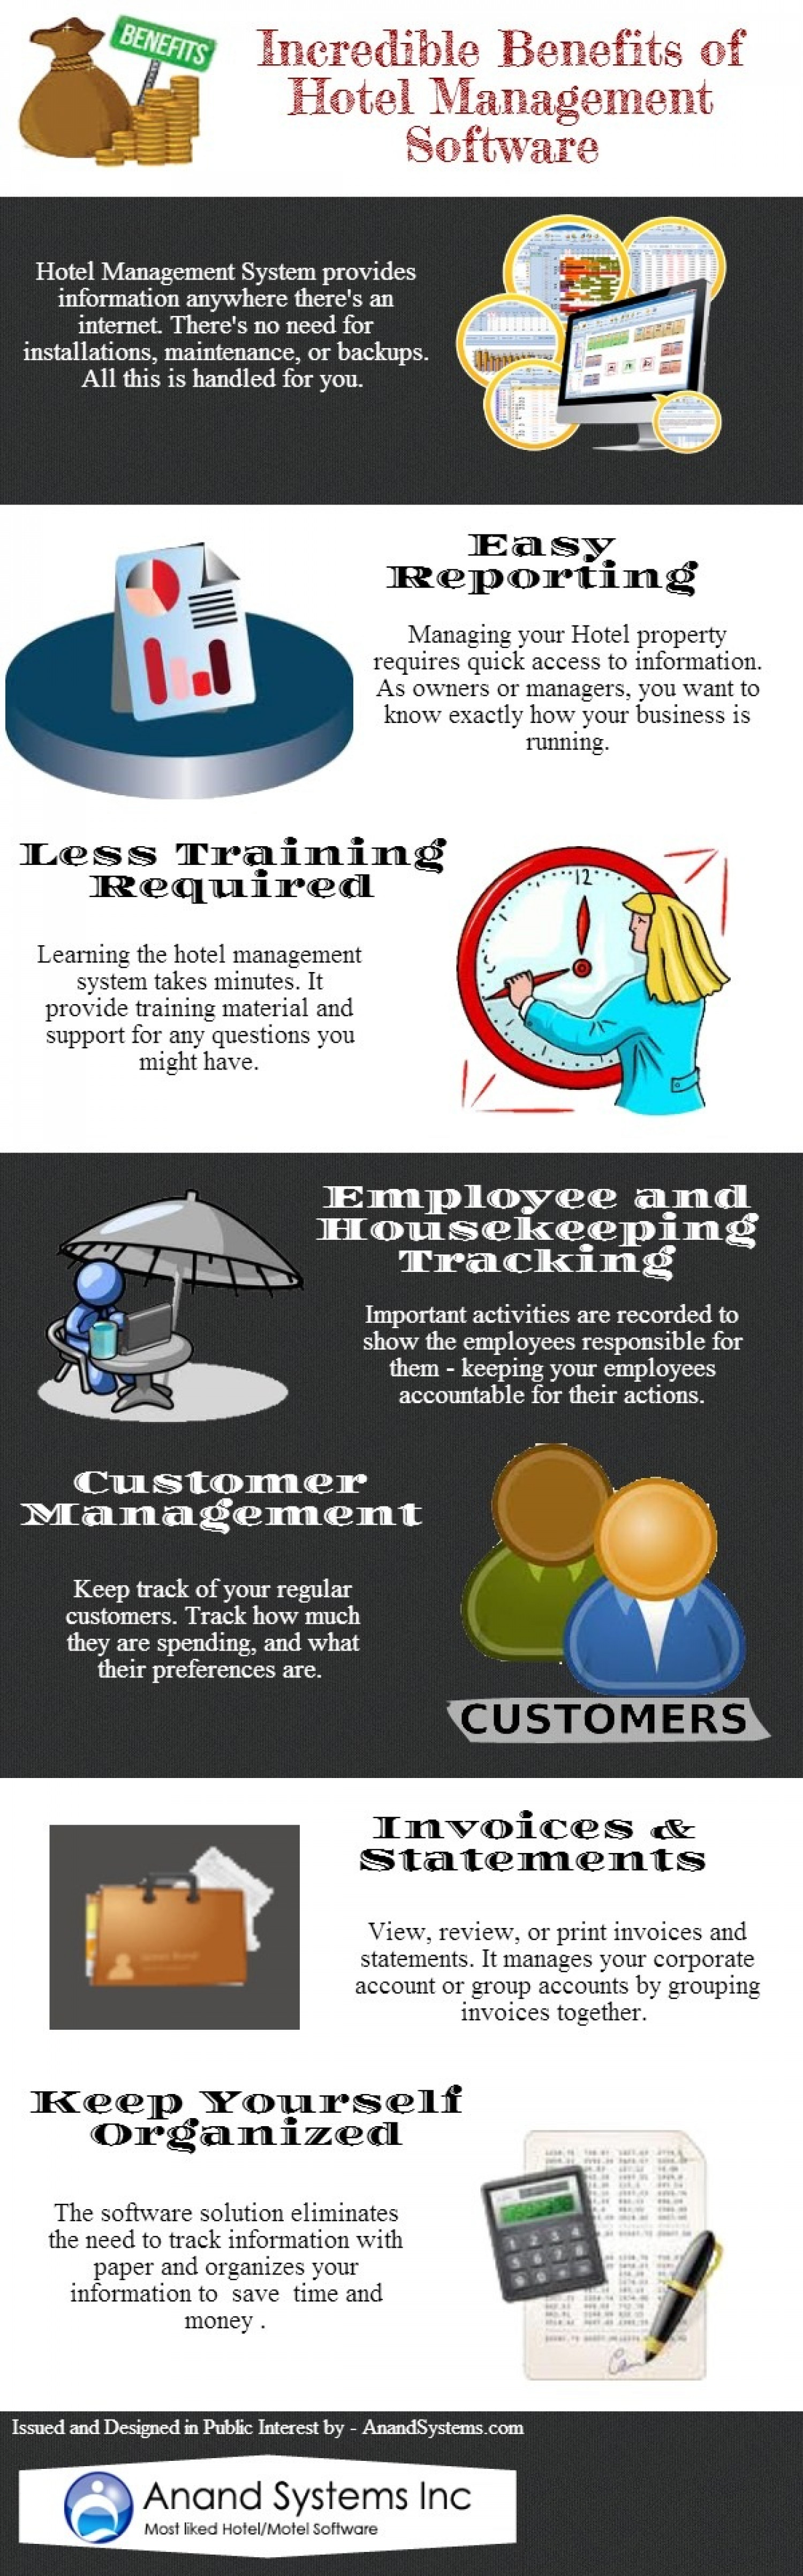 Incredible Benefits of Hotel Management Software Infographic